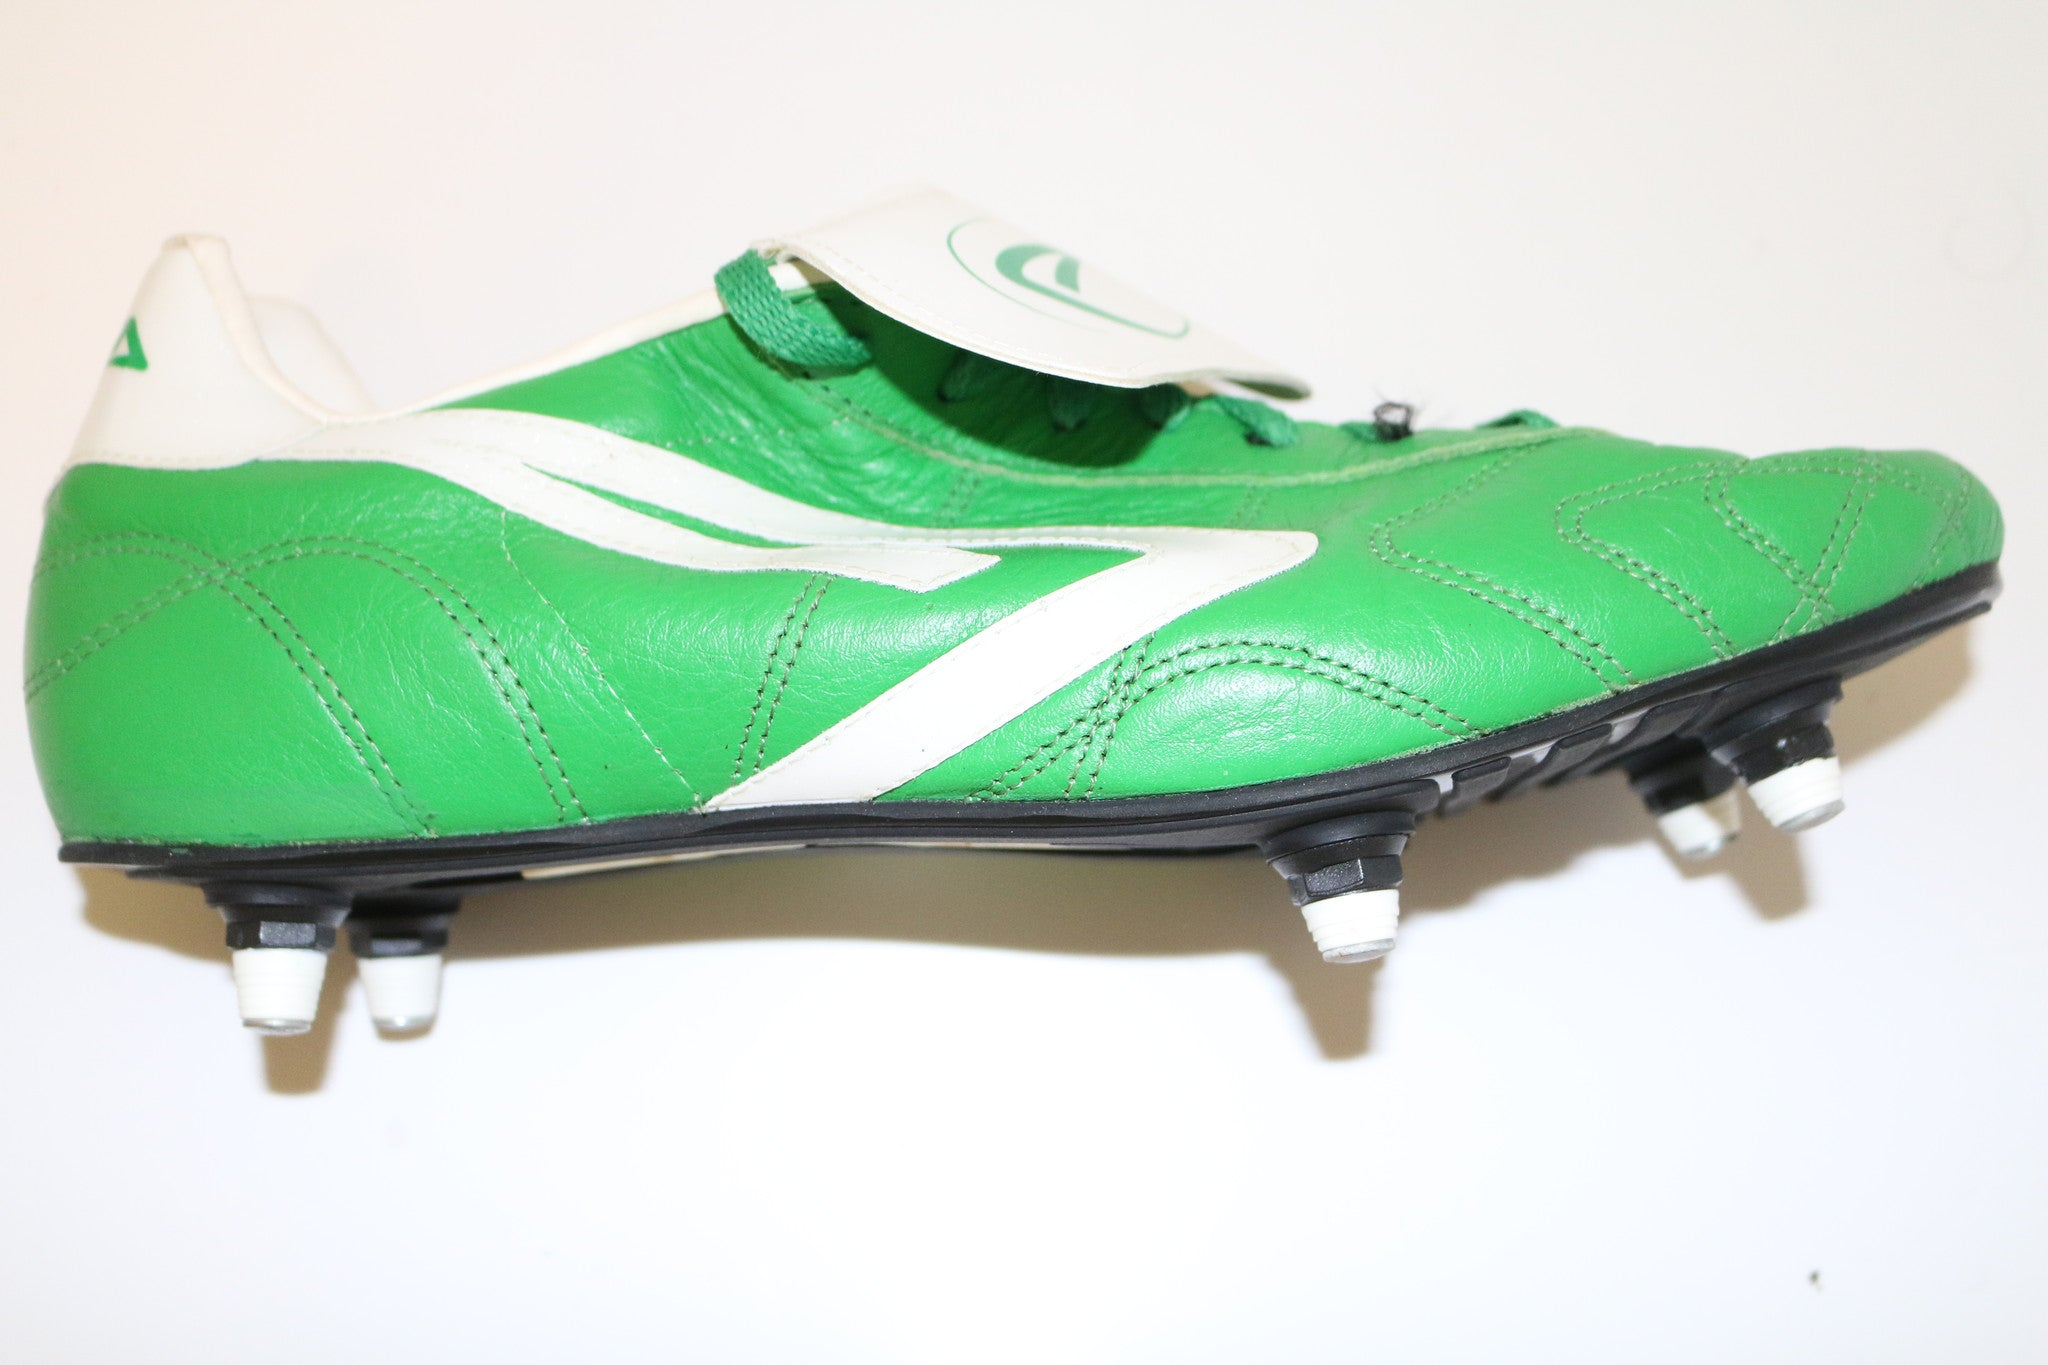 Apta Made in Italy Pro Football Boots UK11 RRP 115 Euros